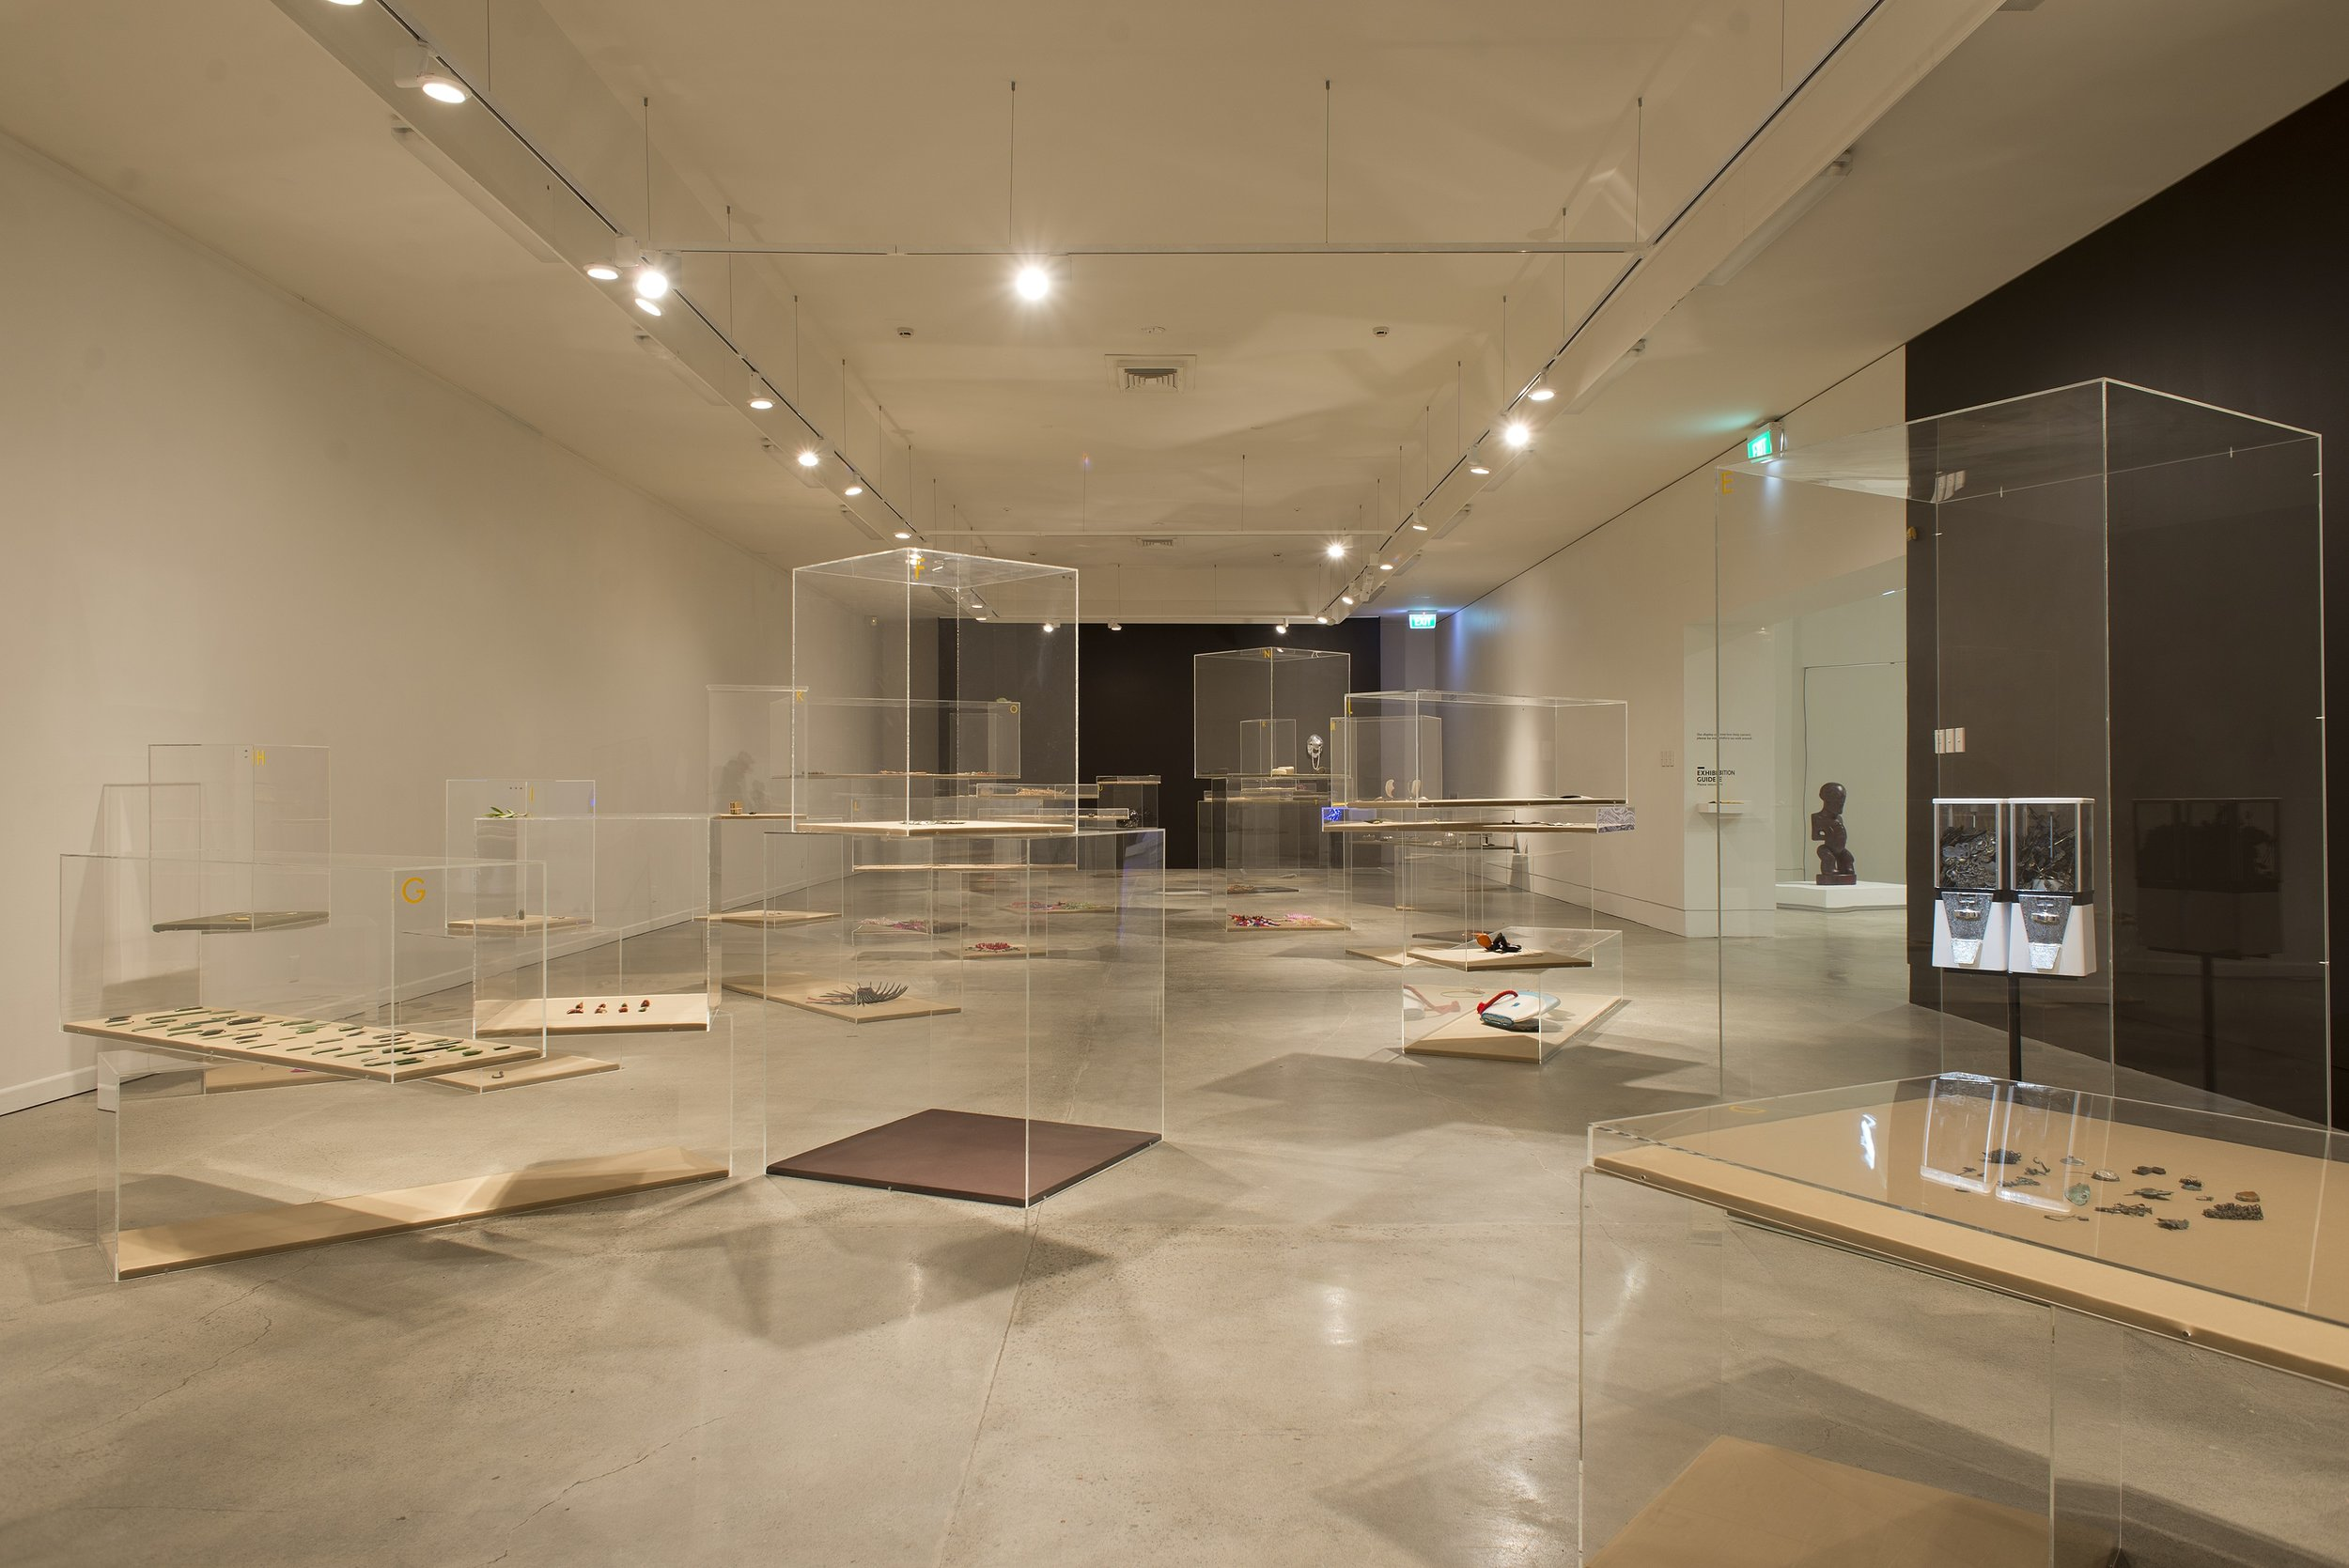 Wunderrūma , installation view, 2014. Courtesy of The Dowse Art Museum. Photo by John Lake.